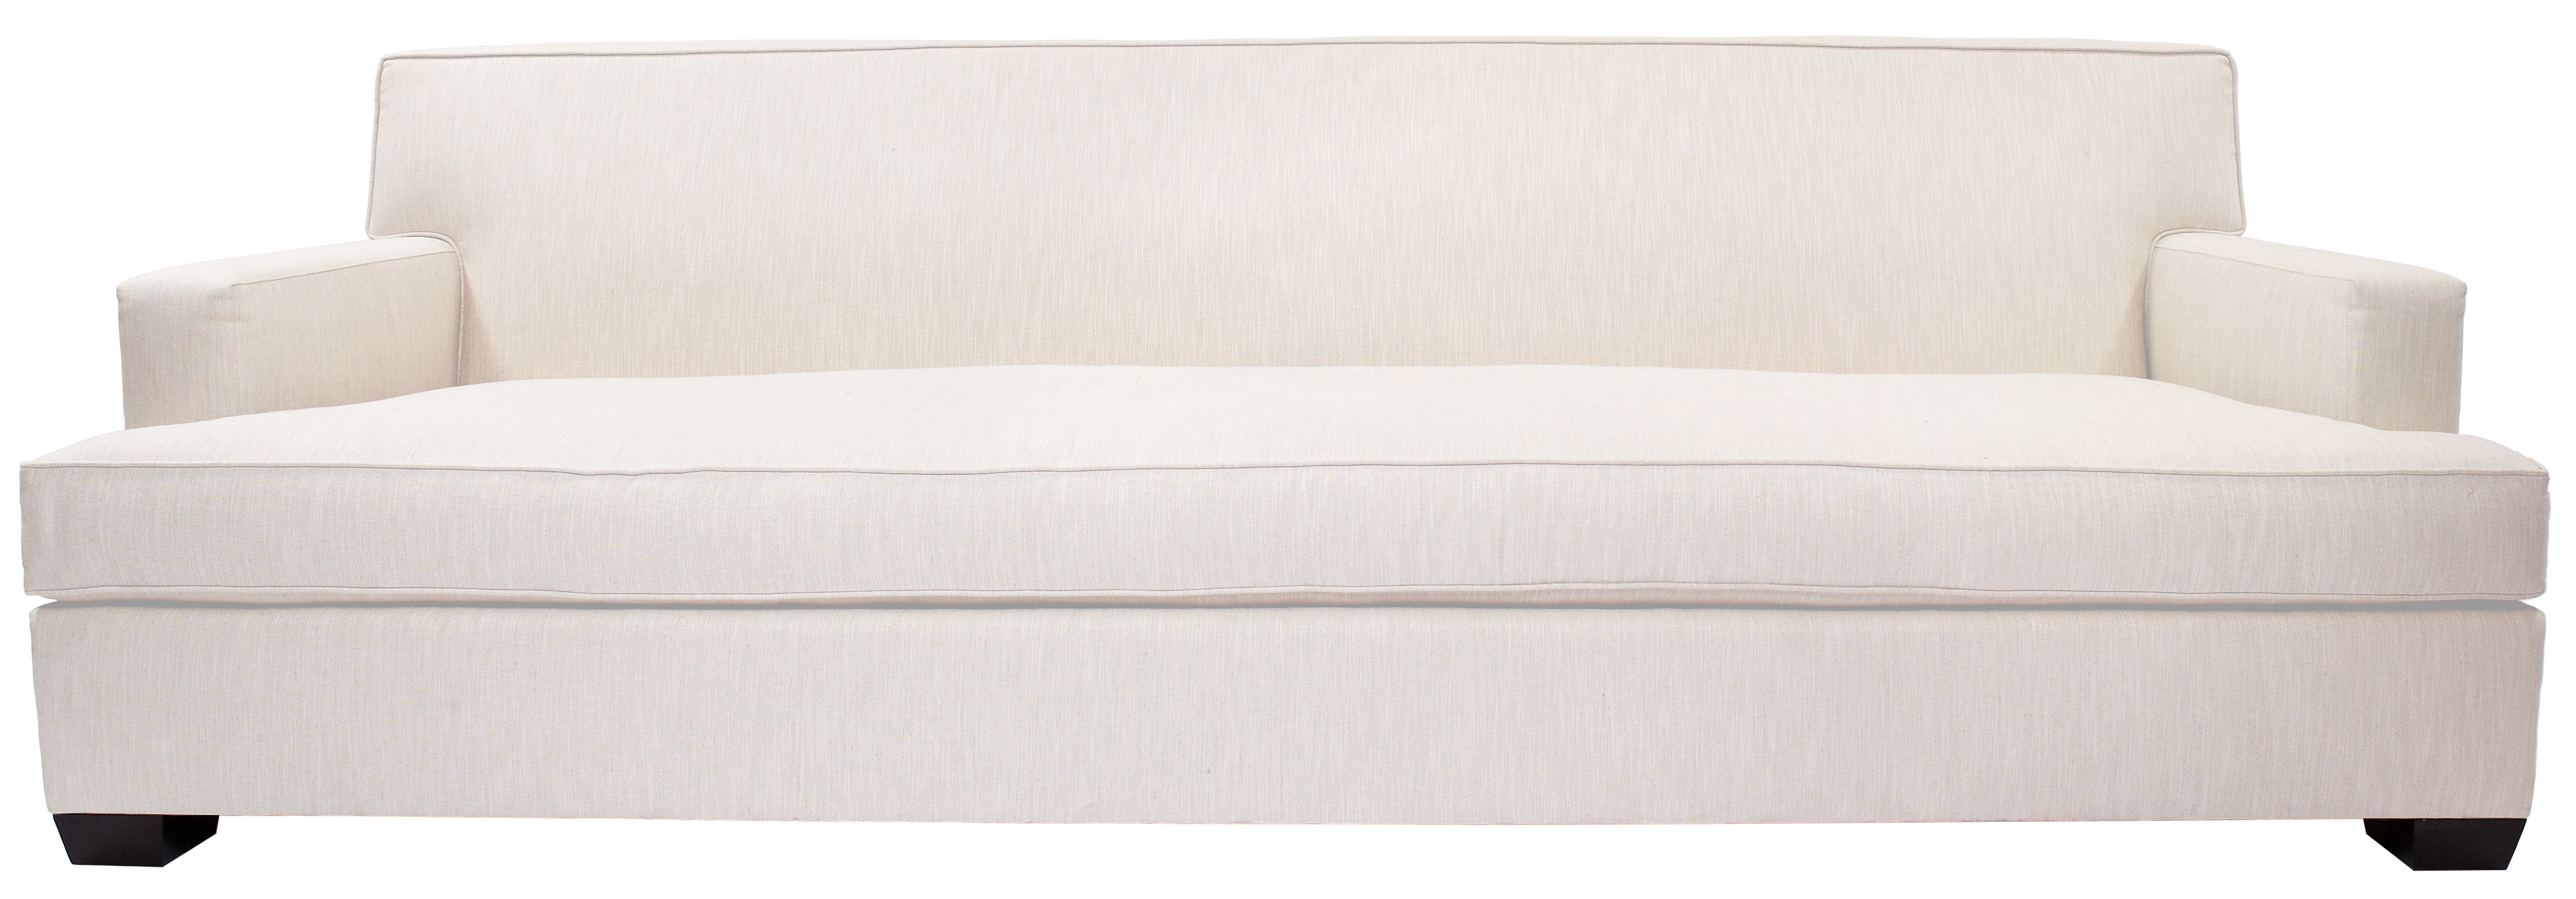 How to edit a png file in photoshop. Sofa here is the